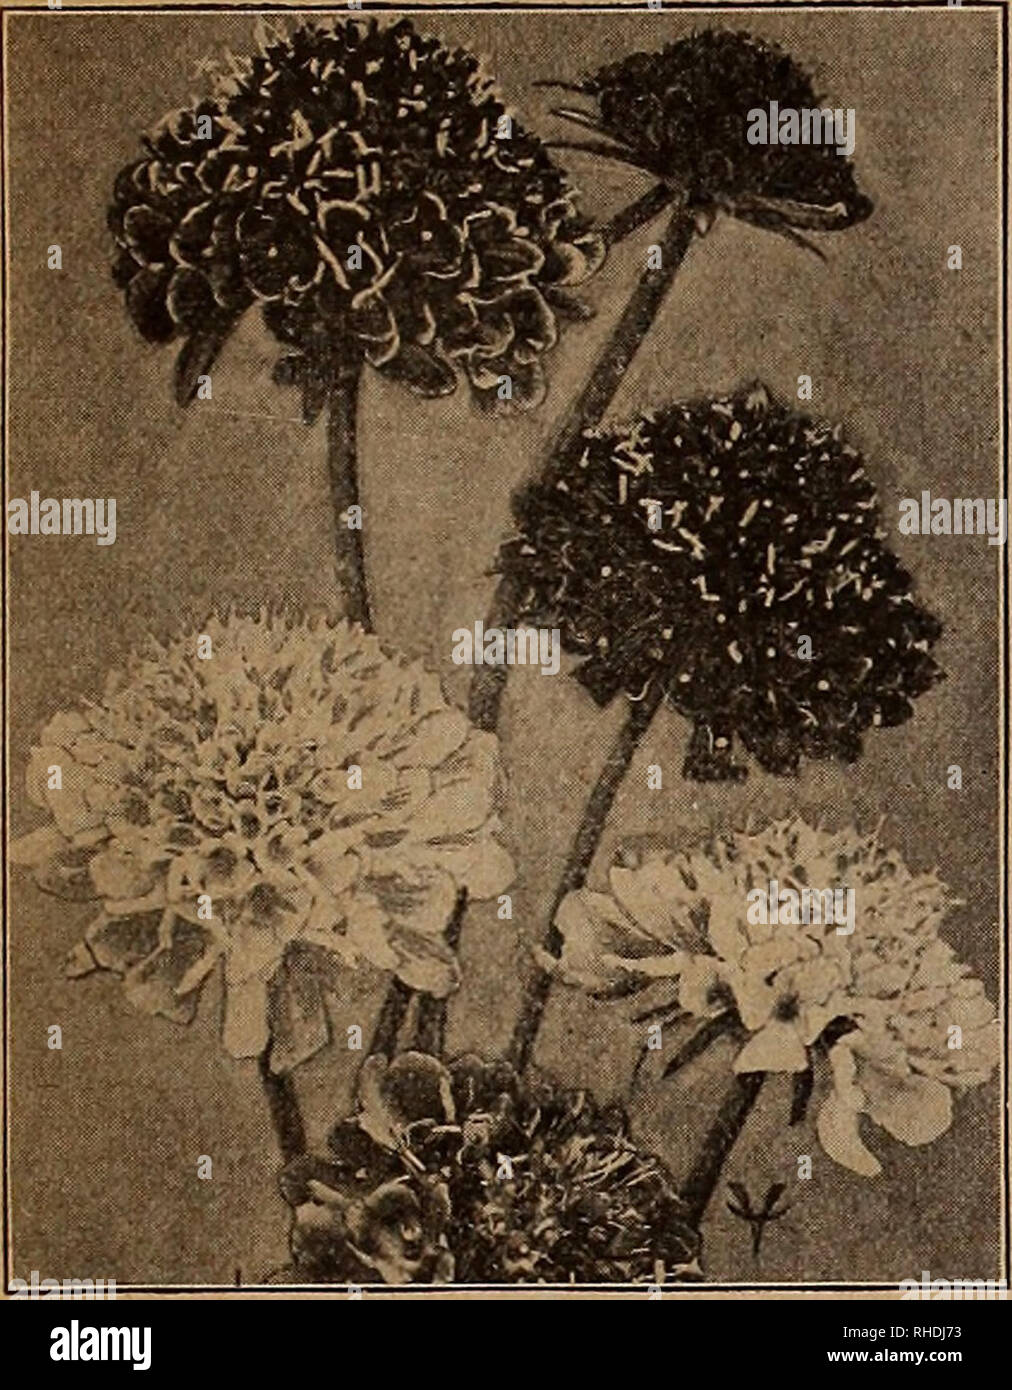 . Book for florists. Flowers Seeds Catalogs; Bulbs (Plants) Seedlings Catalogs; Trees Seeds Catalogs; Horticulture Equipment and supplies Catalogs. VAUGHAN'S SEEP STORE, CHIC&@© SfHW ^©i&SE, B©©jE W©m WlL©m,mT& 25. Please note that these images are extracted from scanned page images that may have been digitally enhanced for readability - coloration and appearance of these illustrations may not perfectly resemble the original work.. Vaughan's Seed Company; Henry G. Gilbert Nursery and Seed Trade Catalog Collection. Chicago. Ill. : Vaughan's Seed Store Stock Photo